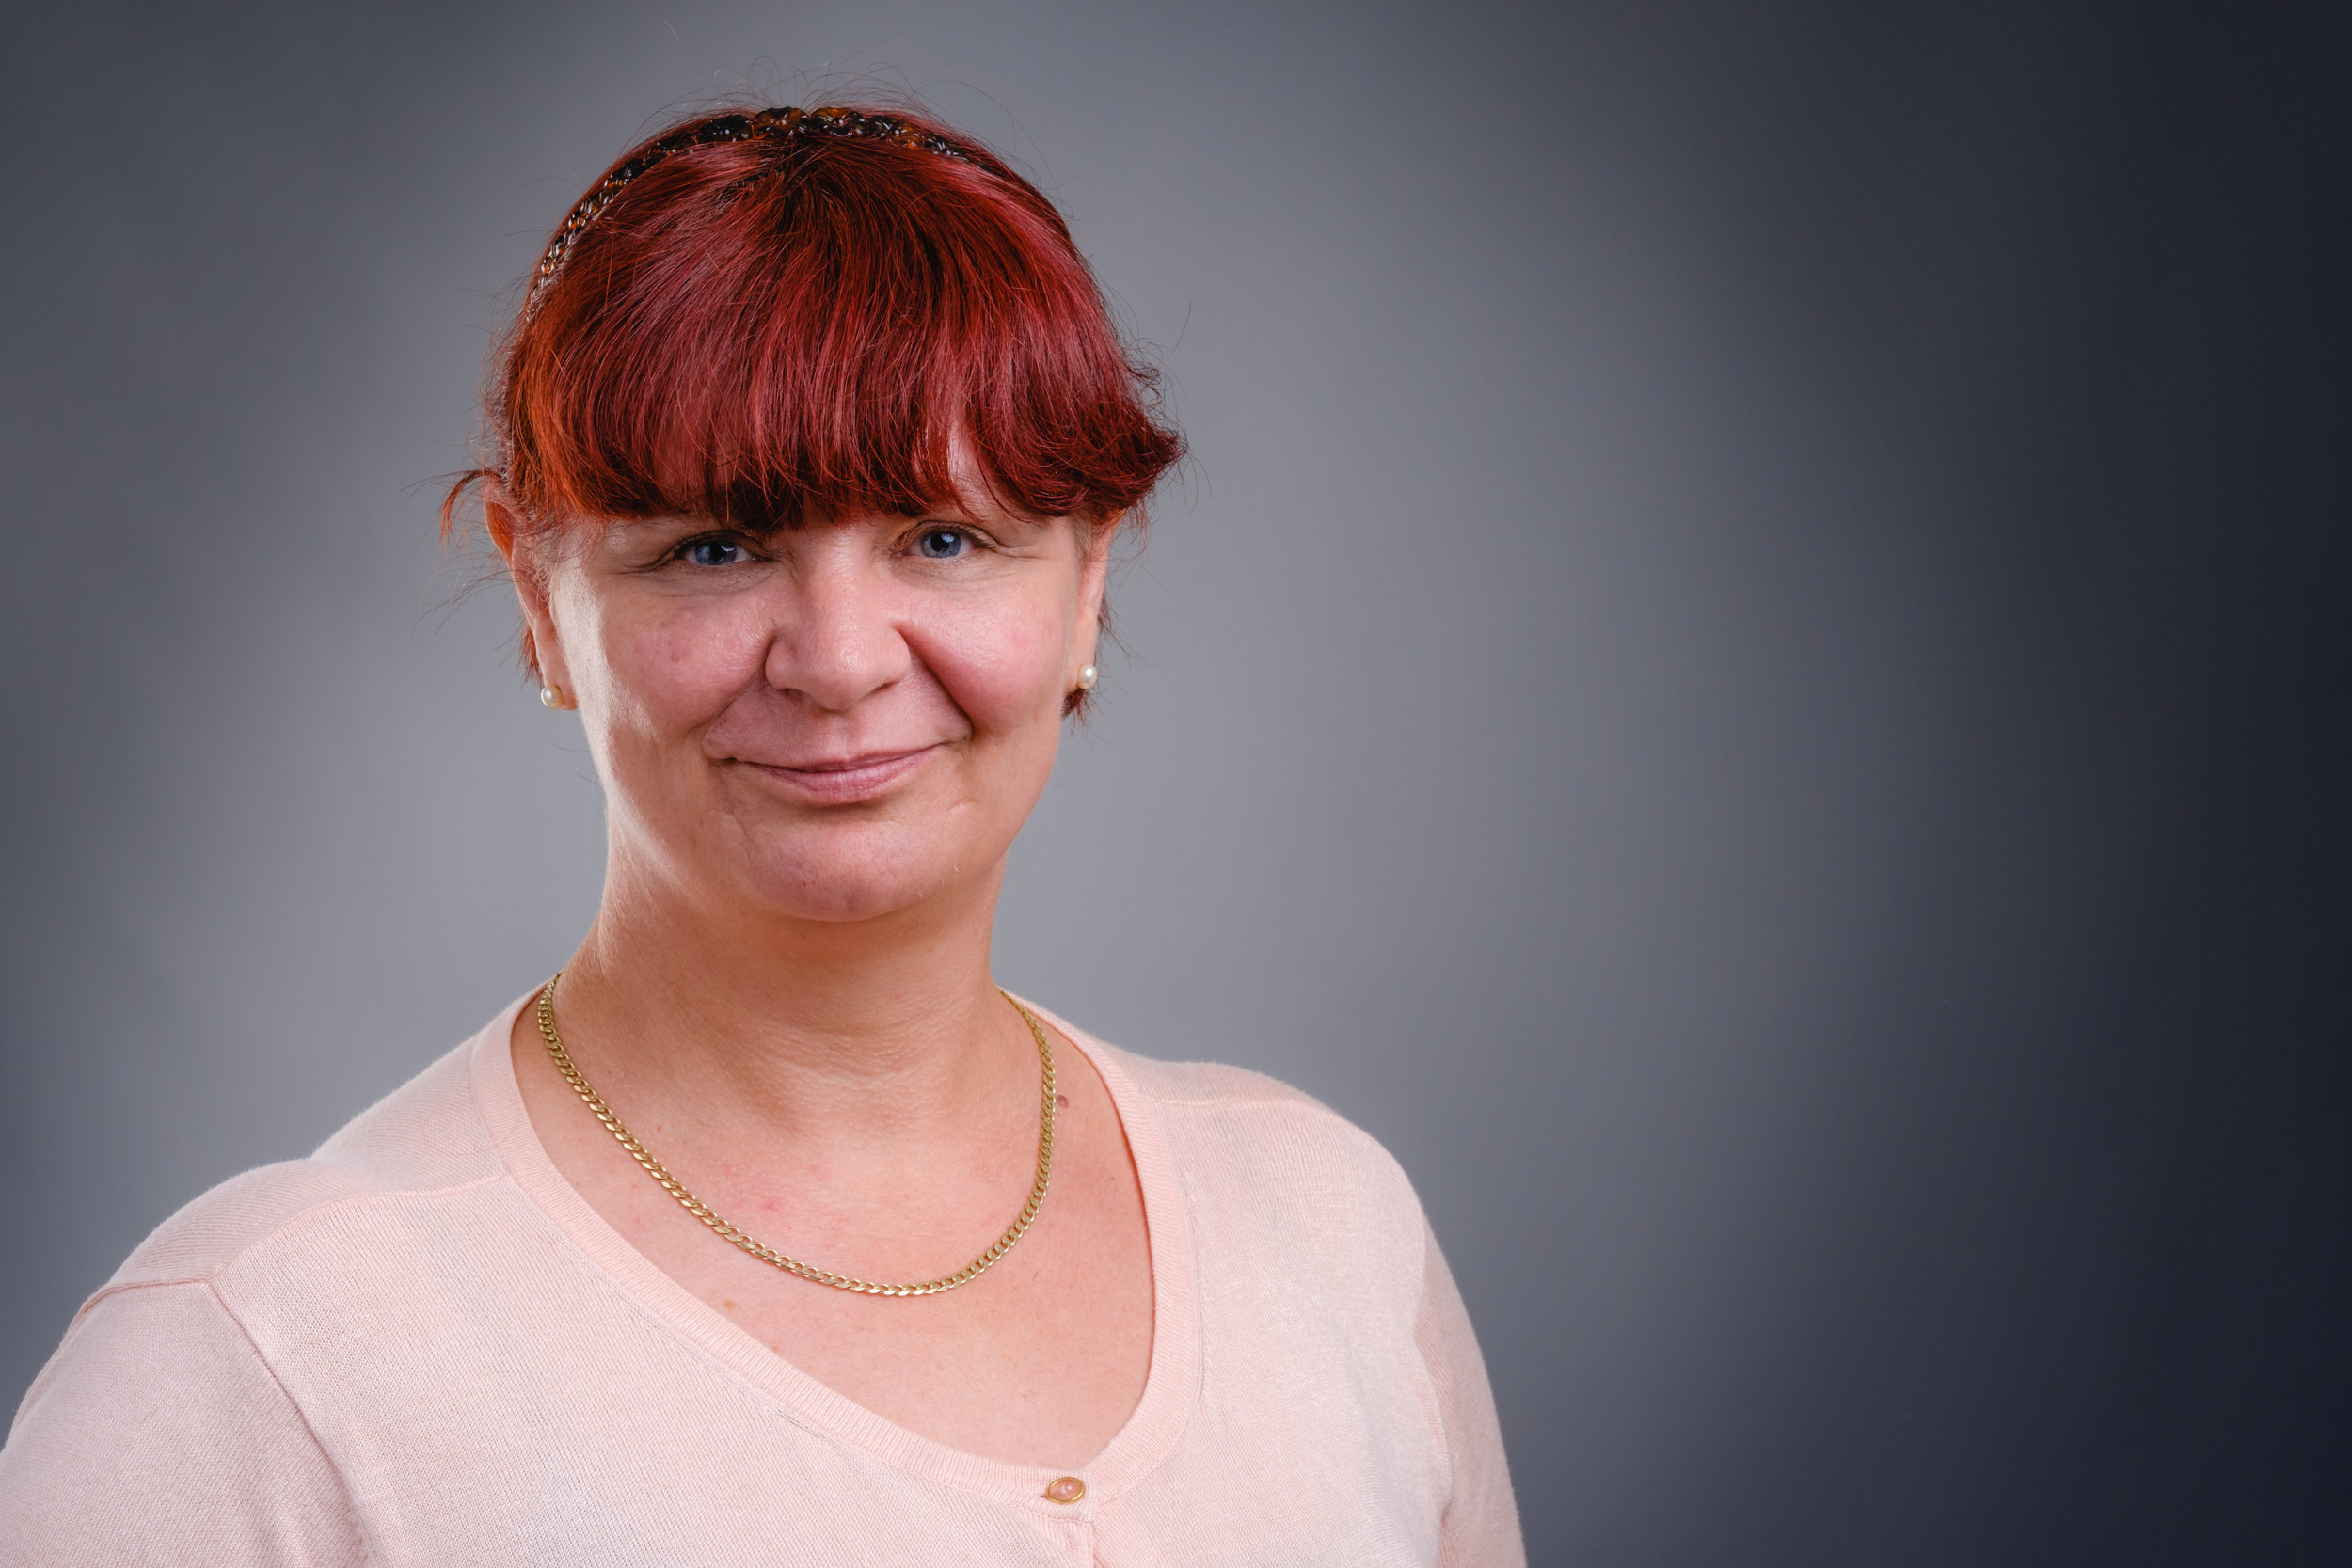 Sara McDougall - Training Consultant at APD Communications